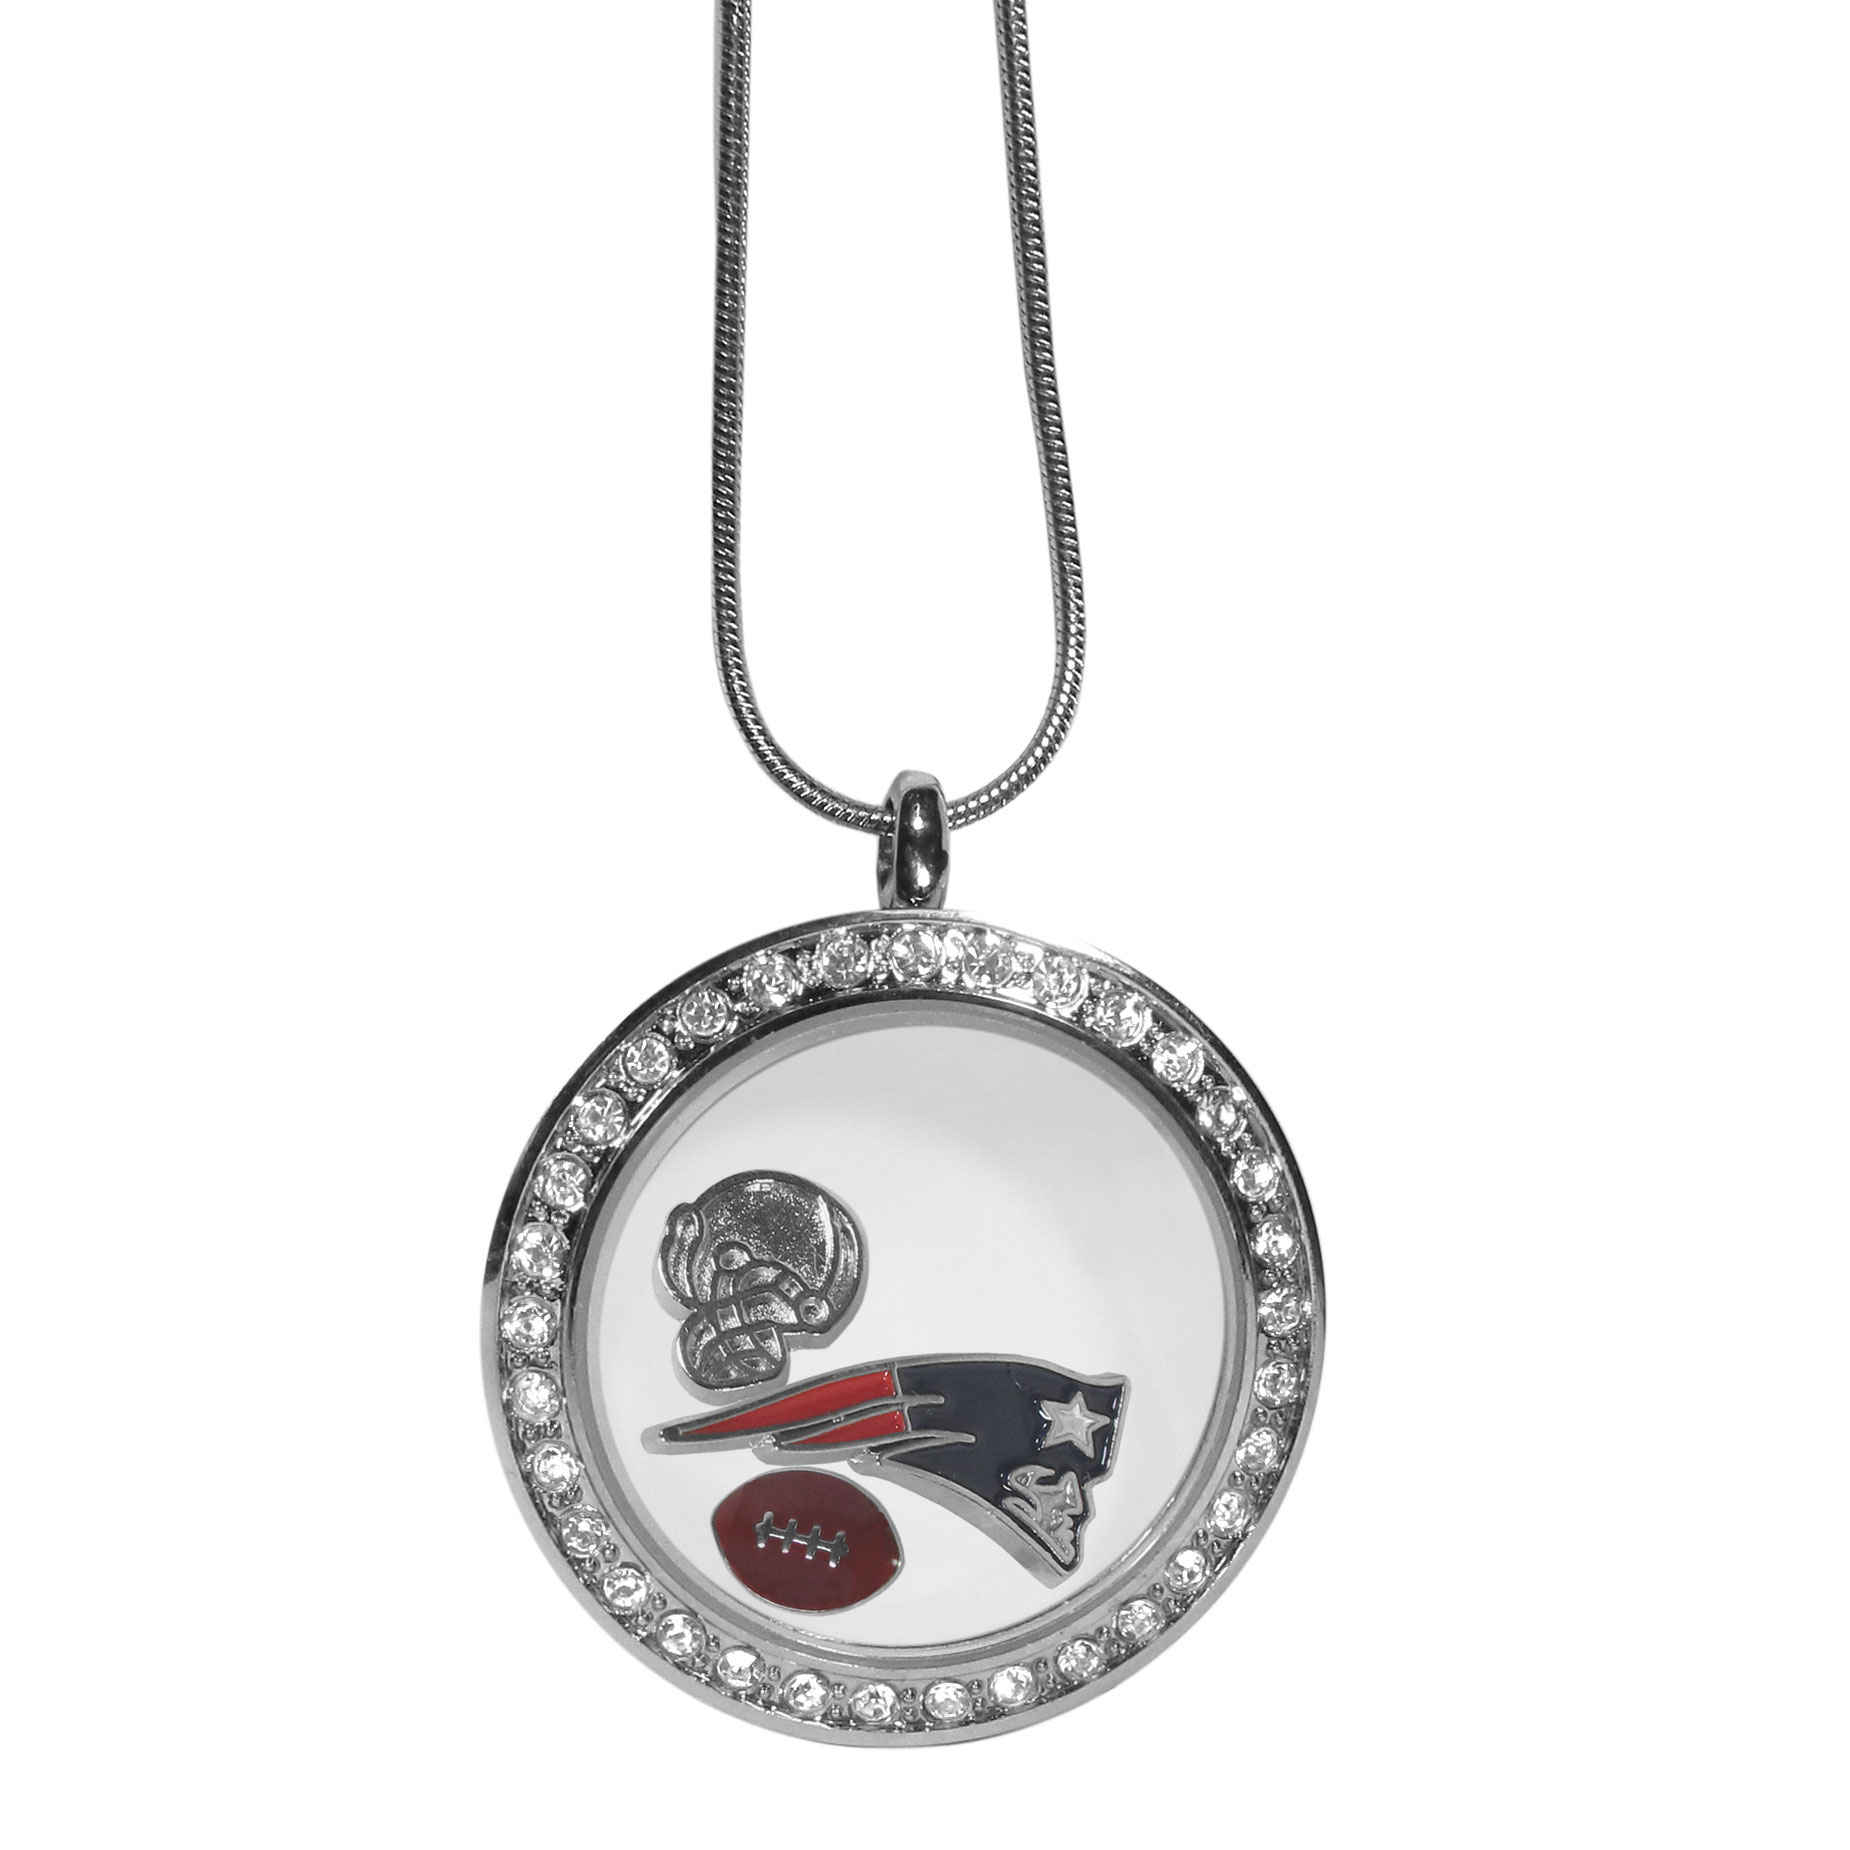 New England Patriots Locket Necklace - We have taken the classic floating charm locket and combined with licensed sports charms to create a must have fan necklace. The necklace comes with 3 charms; 1 New England Patriots charm, one football charm and one helmet charm. The charms float in a beautiful locket that has a strong magnetic closure with a rhinestone border. The locket comes on an 18 inch snake chain with 2 inch extender.